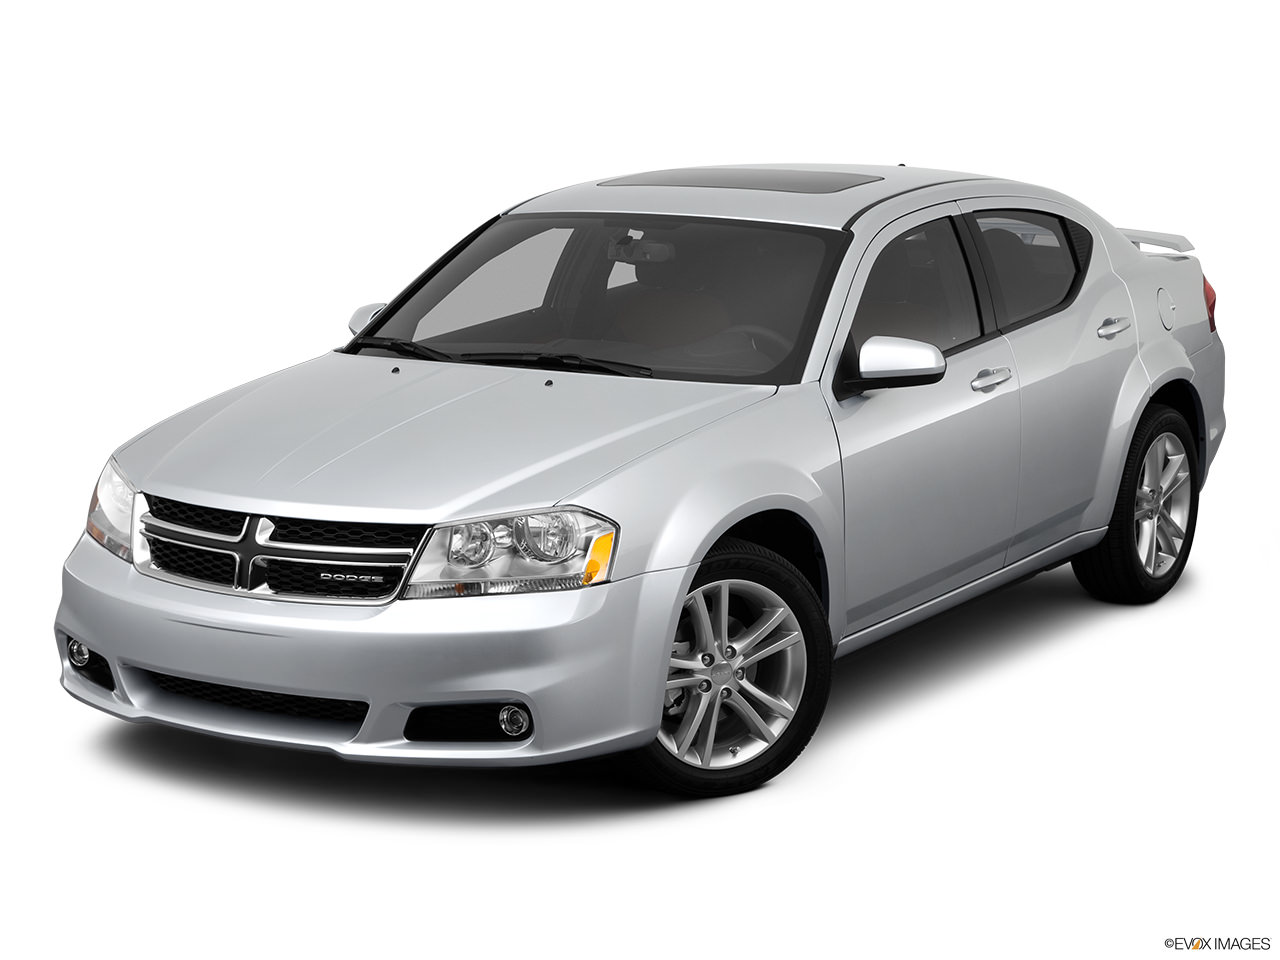 a buyer s guide to the 2012 dodge avenger yourmechanic advice rh yourmechanic com Cigarette Charger Not Working in 2012 Dodge Advenger 2008 2012 Dodge Cars